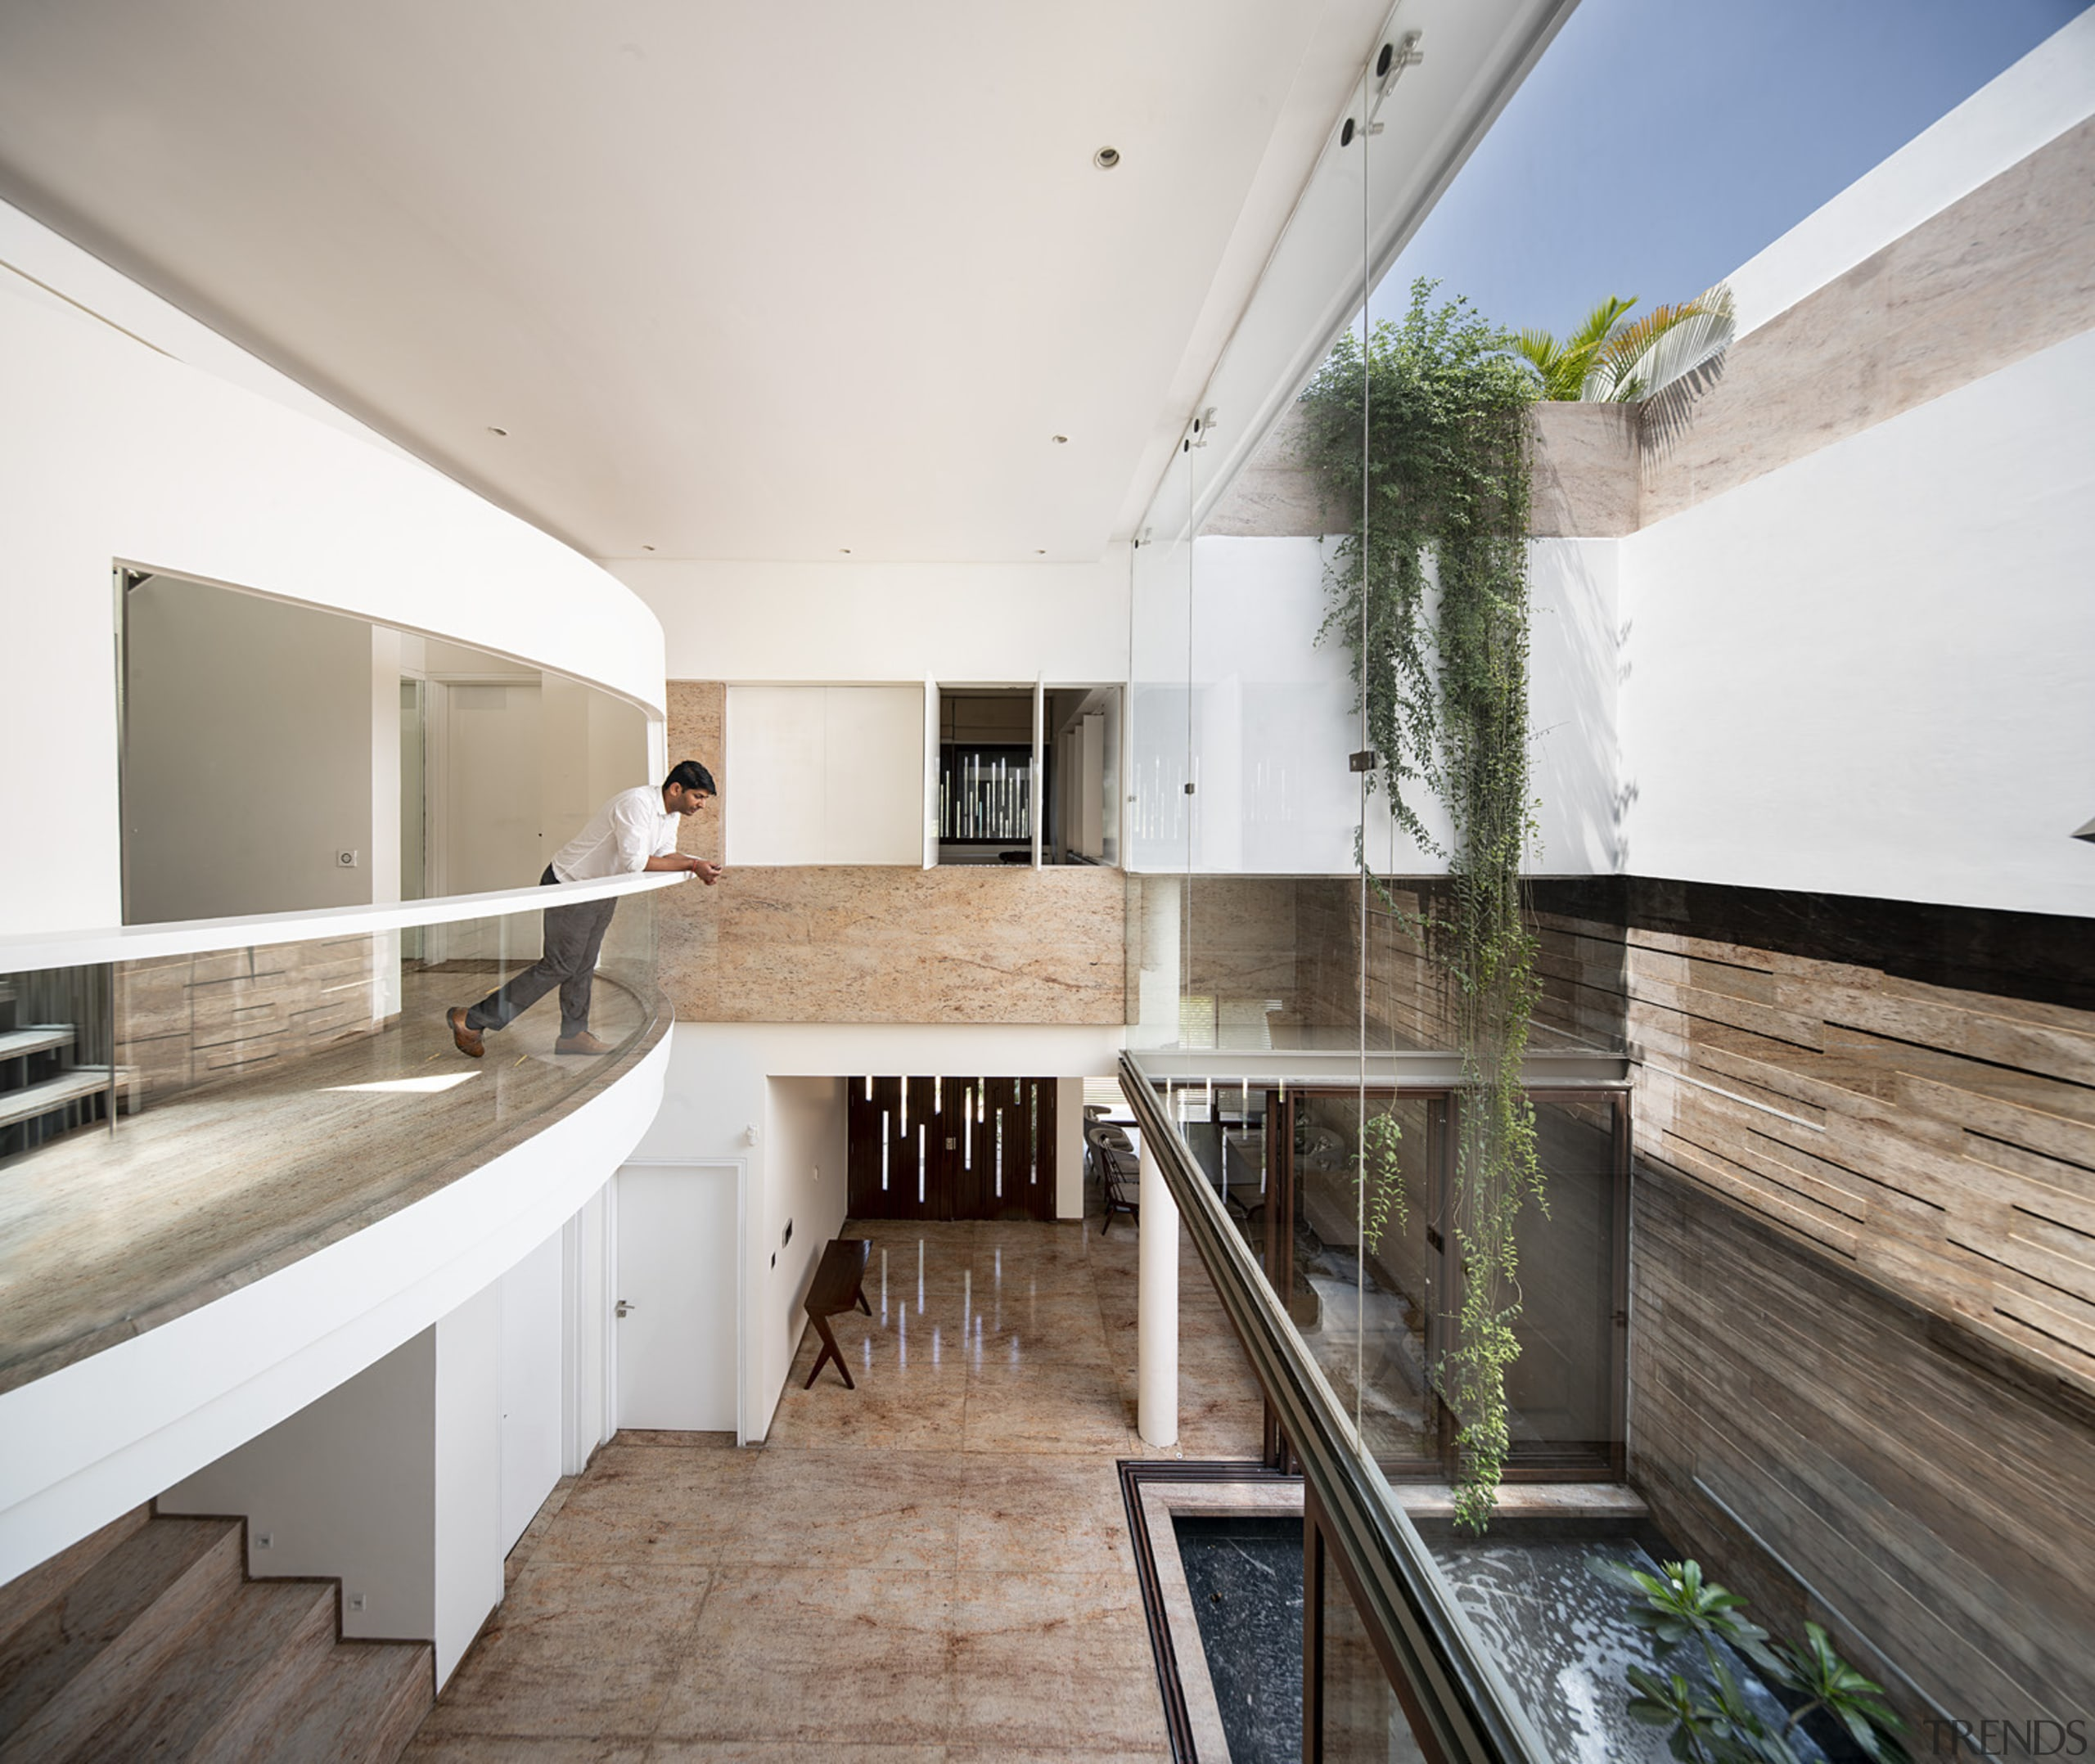 The courtyard facades are designed to avoid allowing